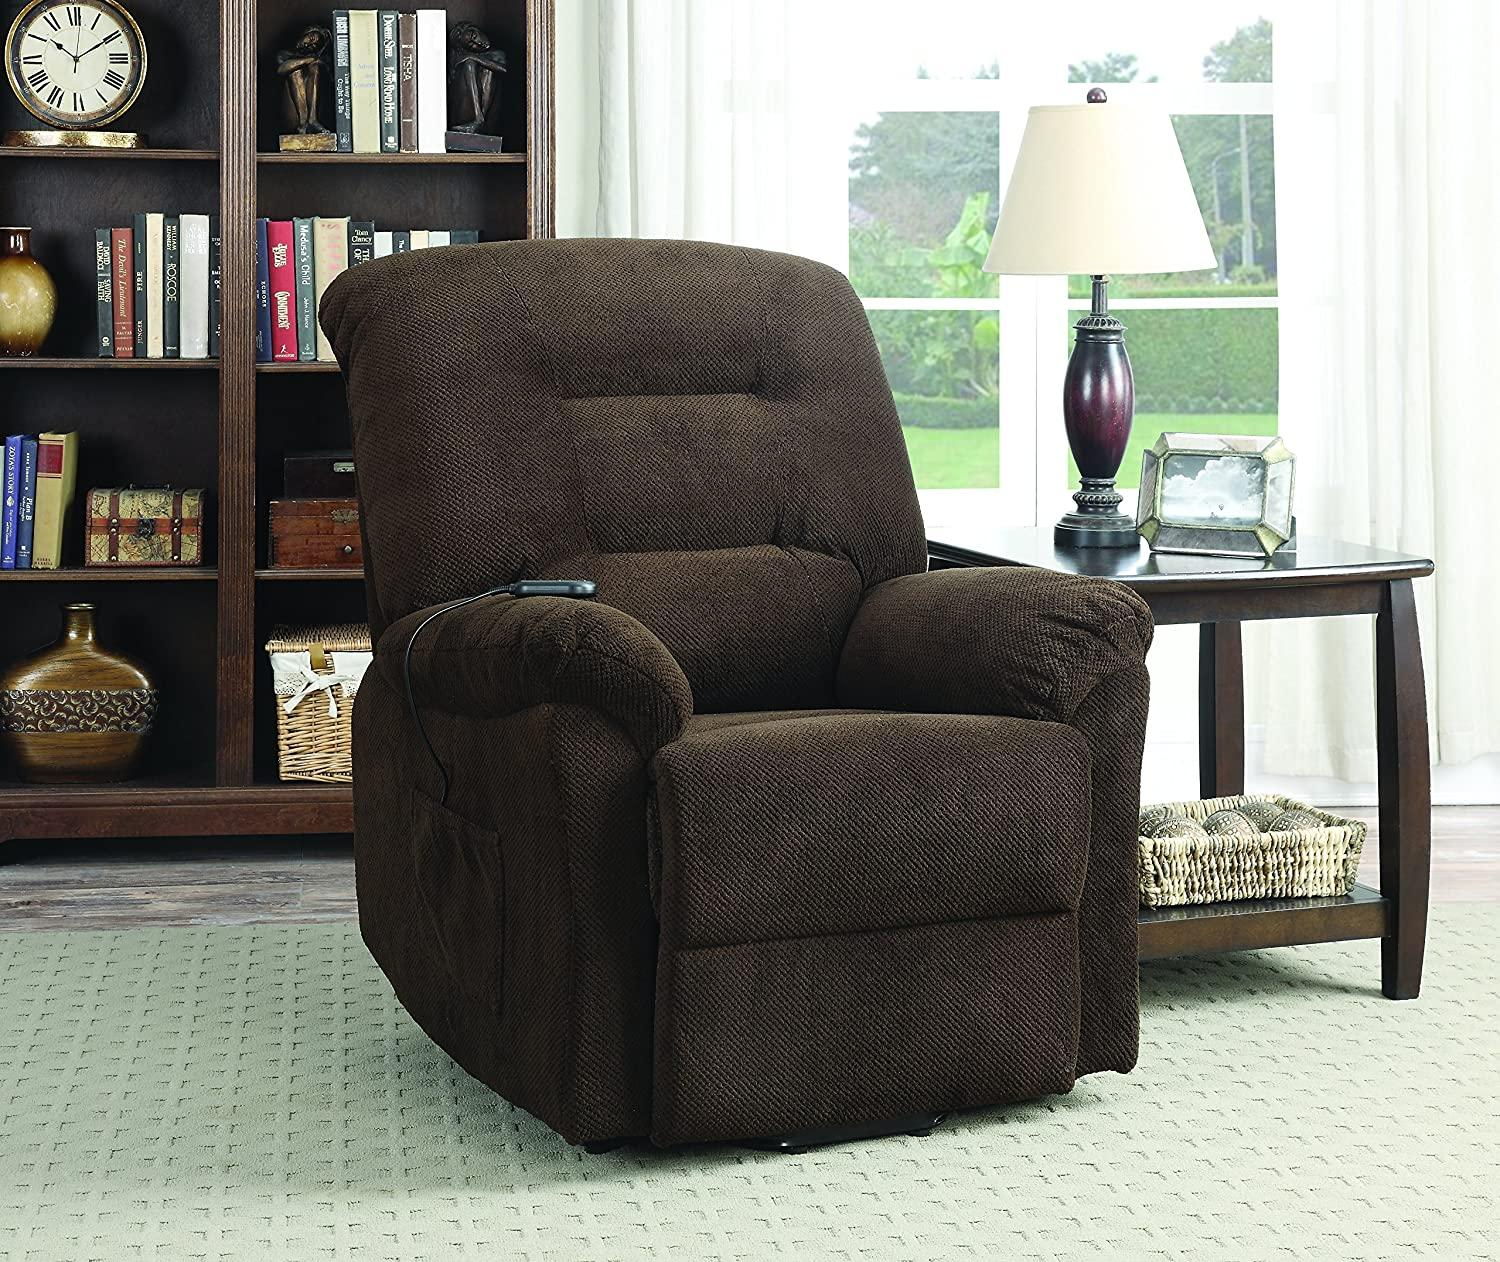 coaster power lift recliner for elderly